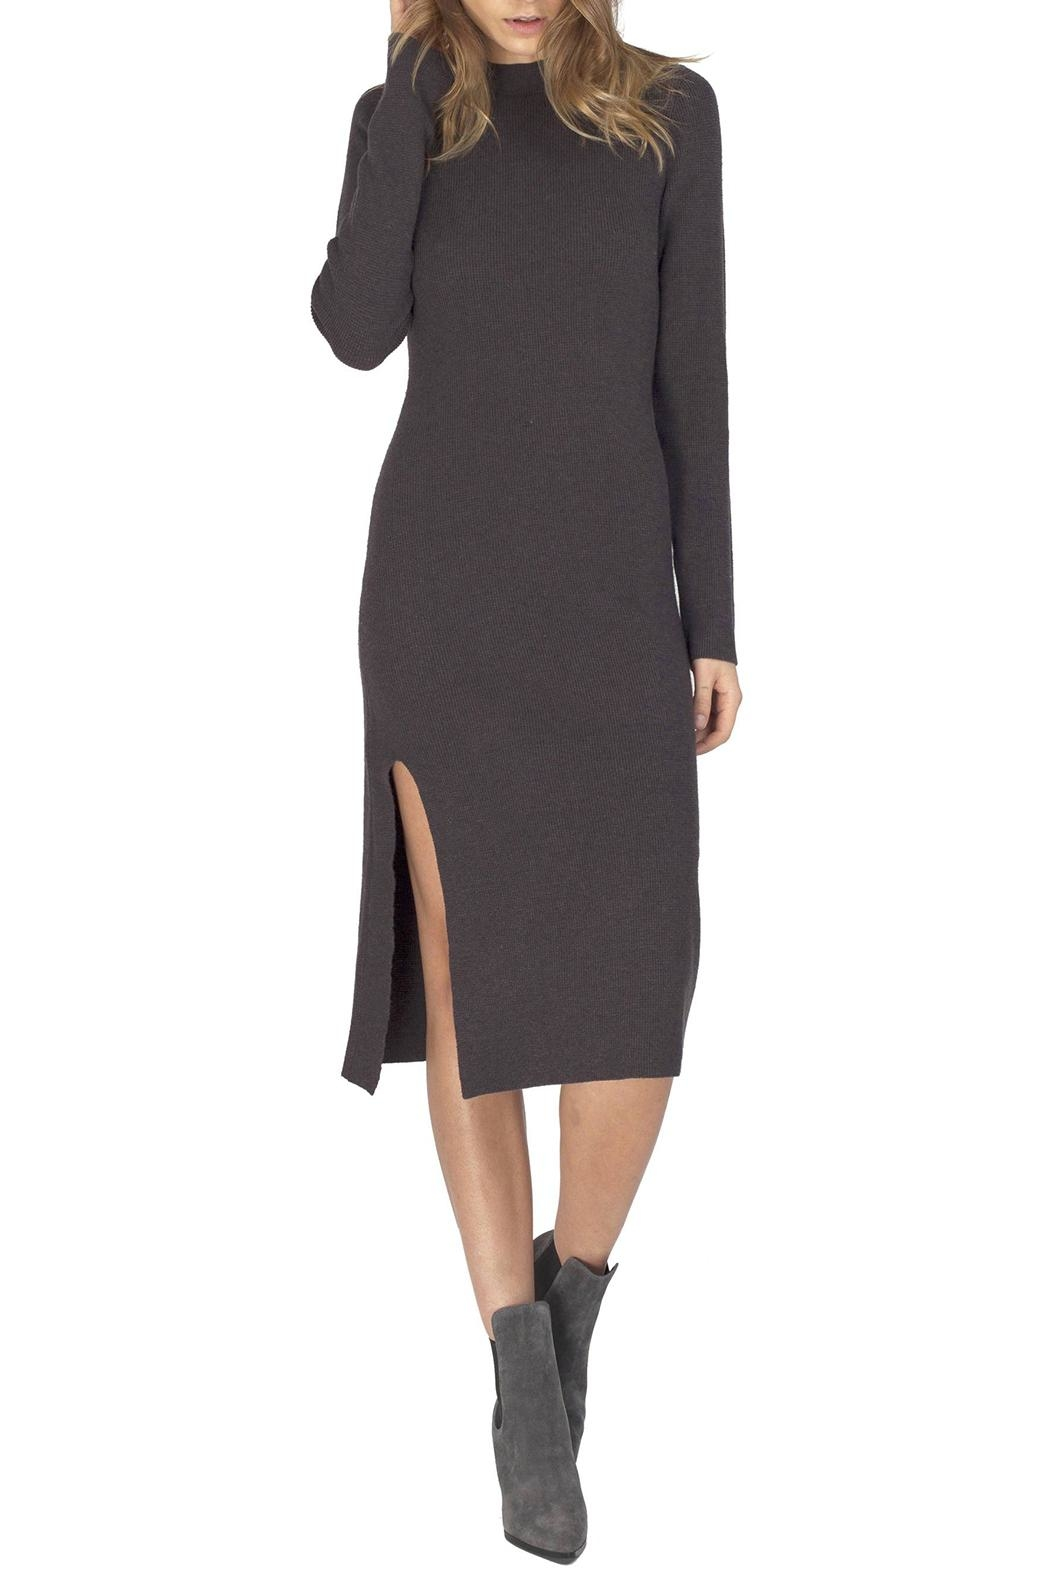 Gentle Fawn Quinn Sweater Dress - Main Image